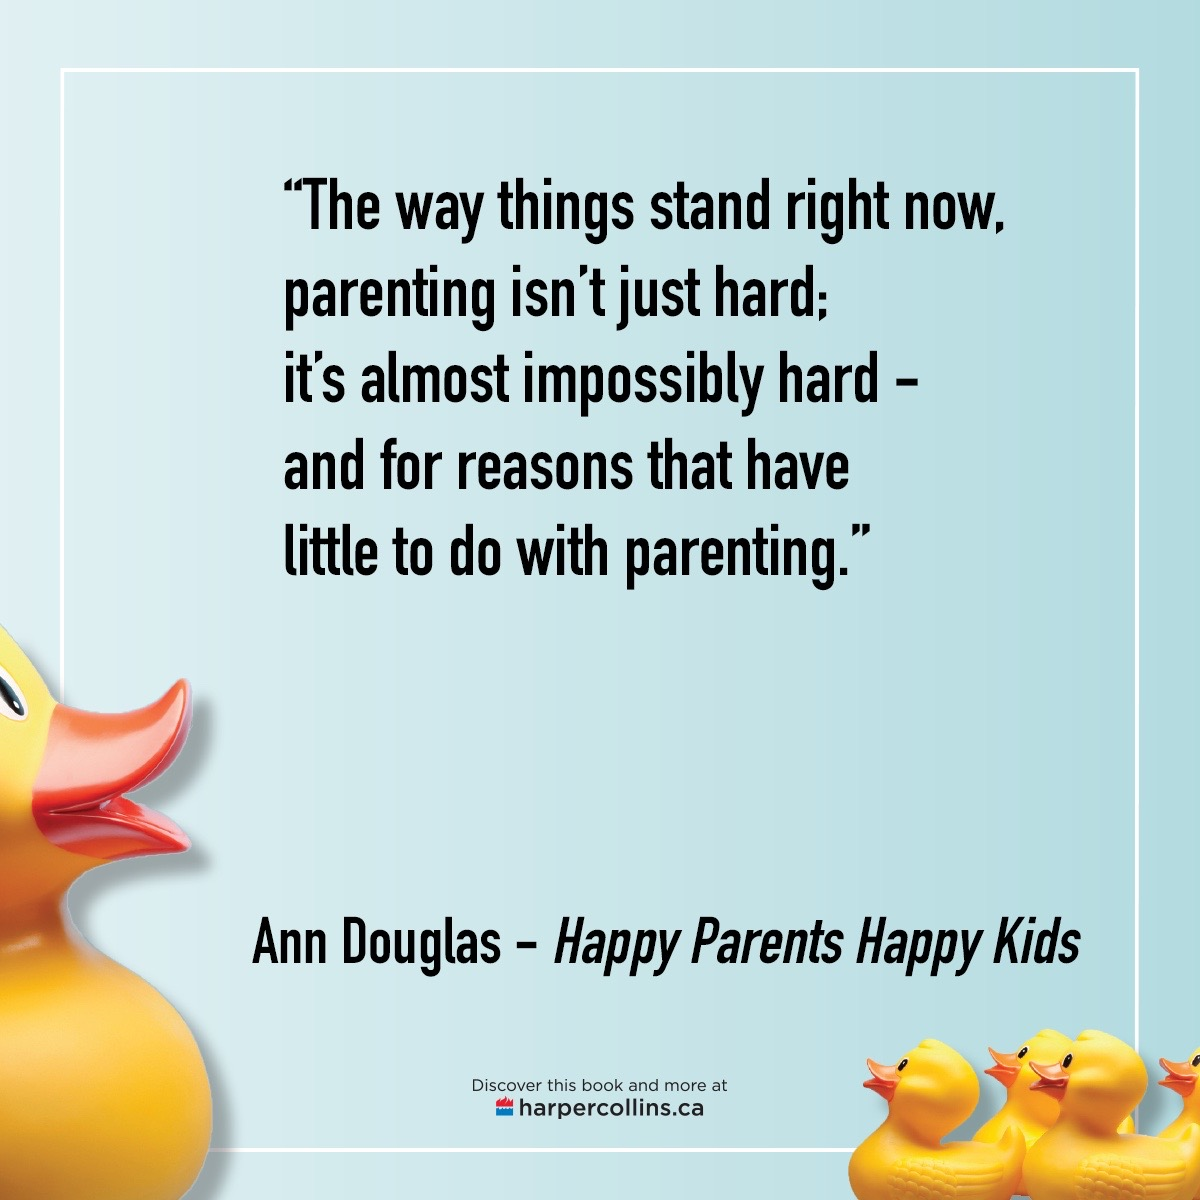 parenting-is-hard-ann-douglas-facebook.jpg